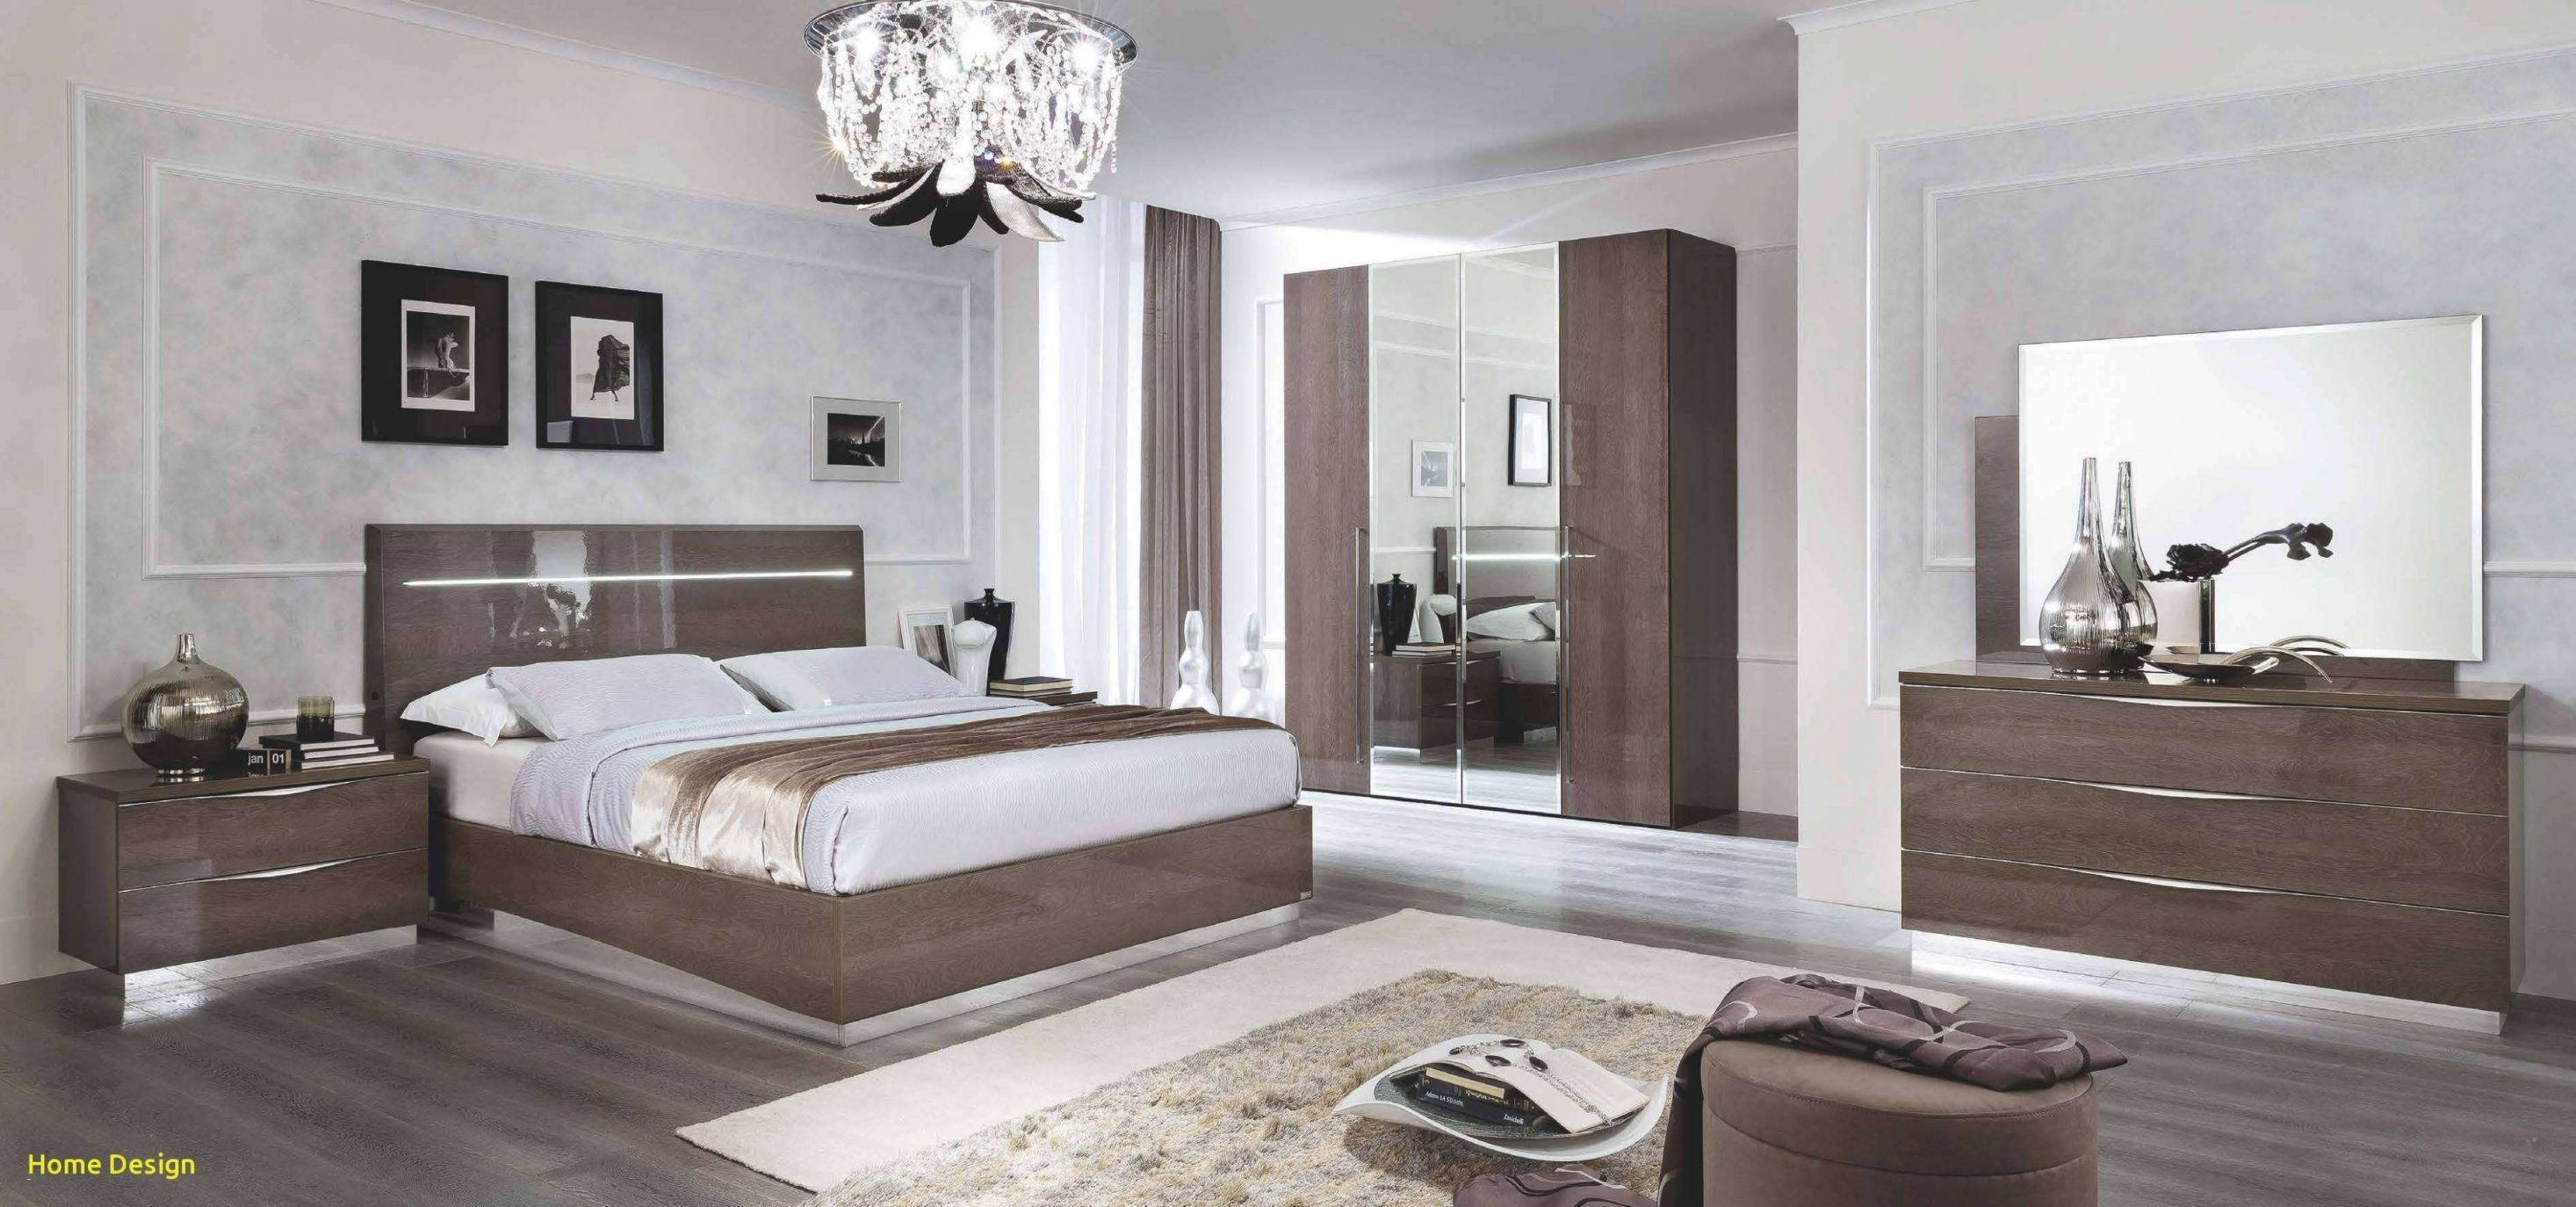 Elegant Italian Modern Bedroom Furniture Sets Home Design within Awesome Italian Modern Bedroom Furniture